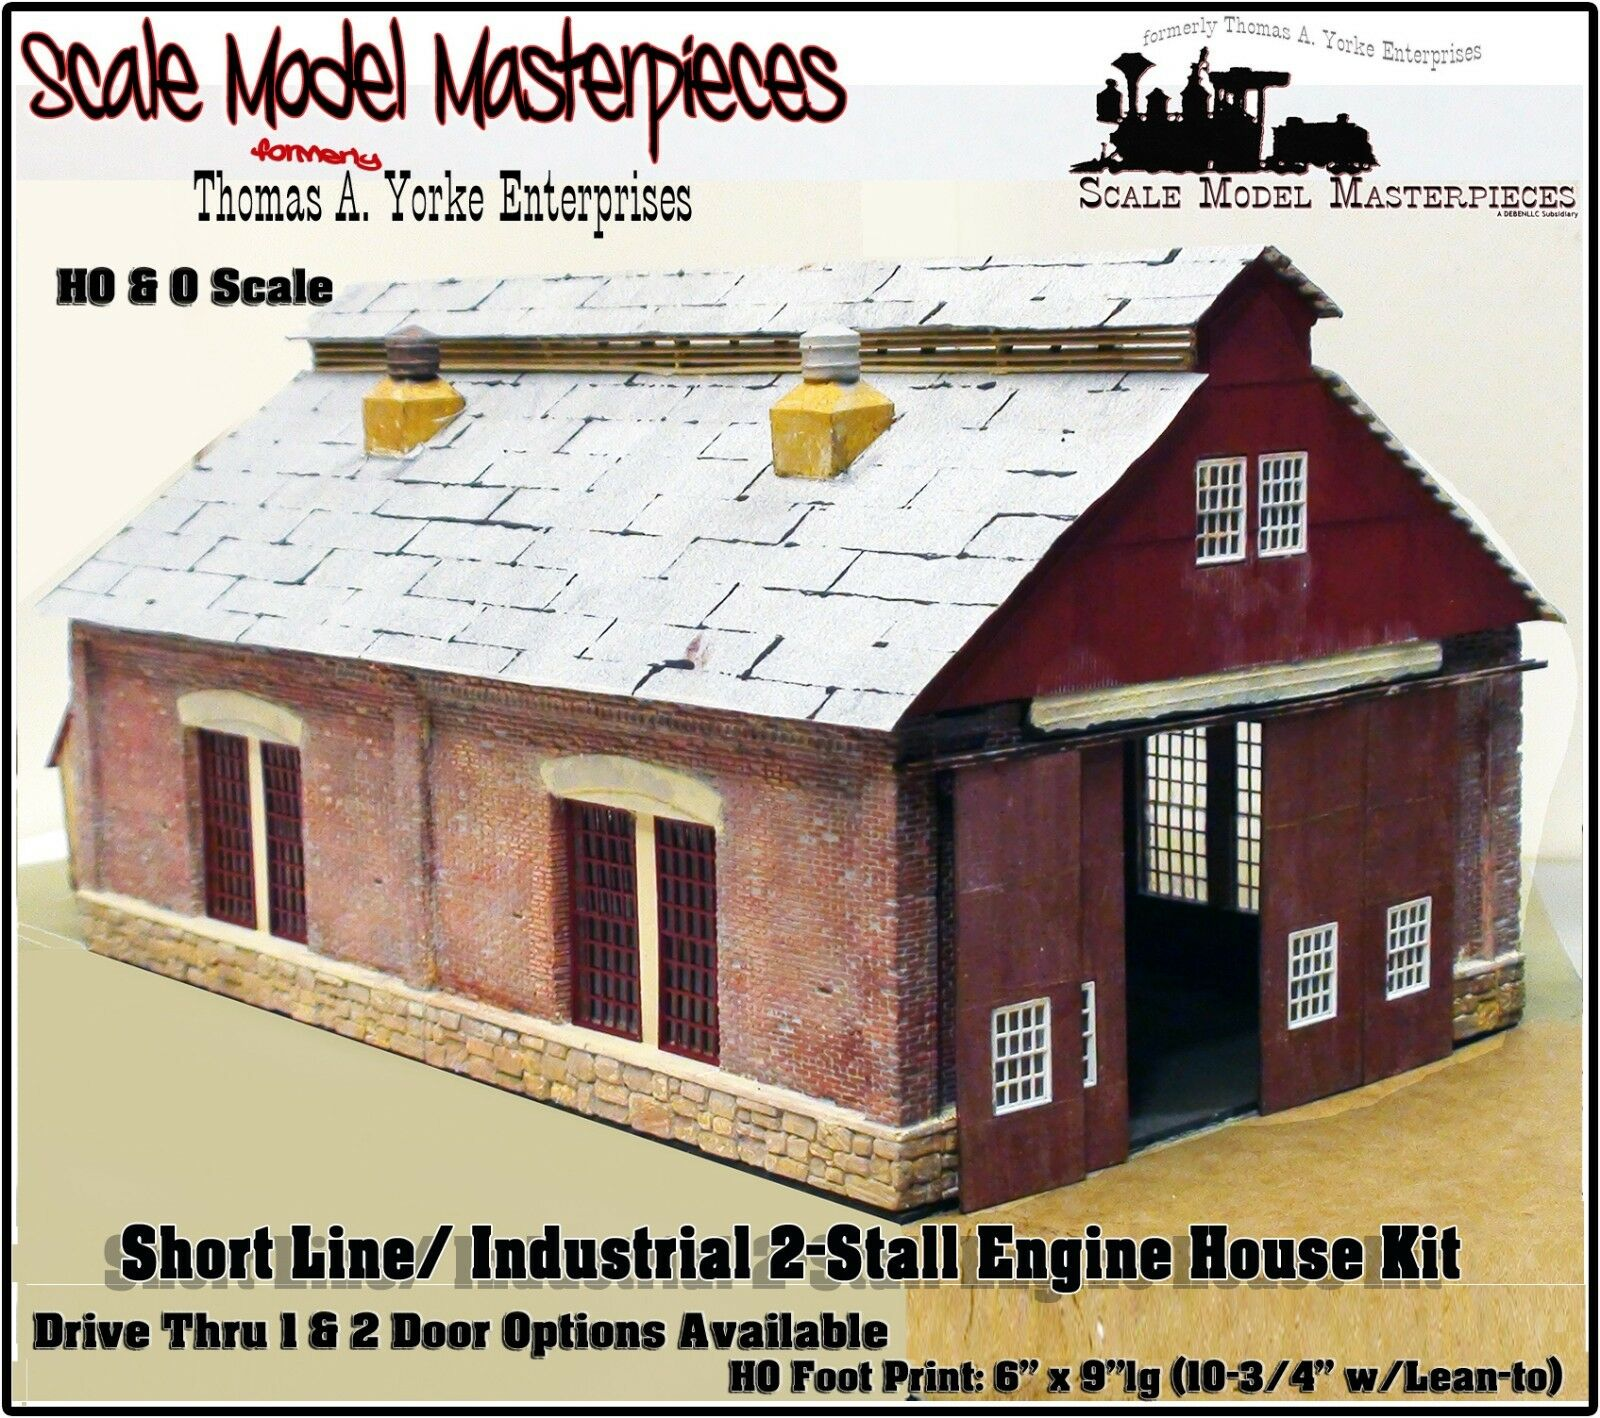 Scale Model Masterpieces Yorke 2-Stall Shortline Industrial Engine House Kit HO